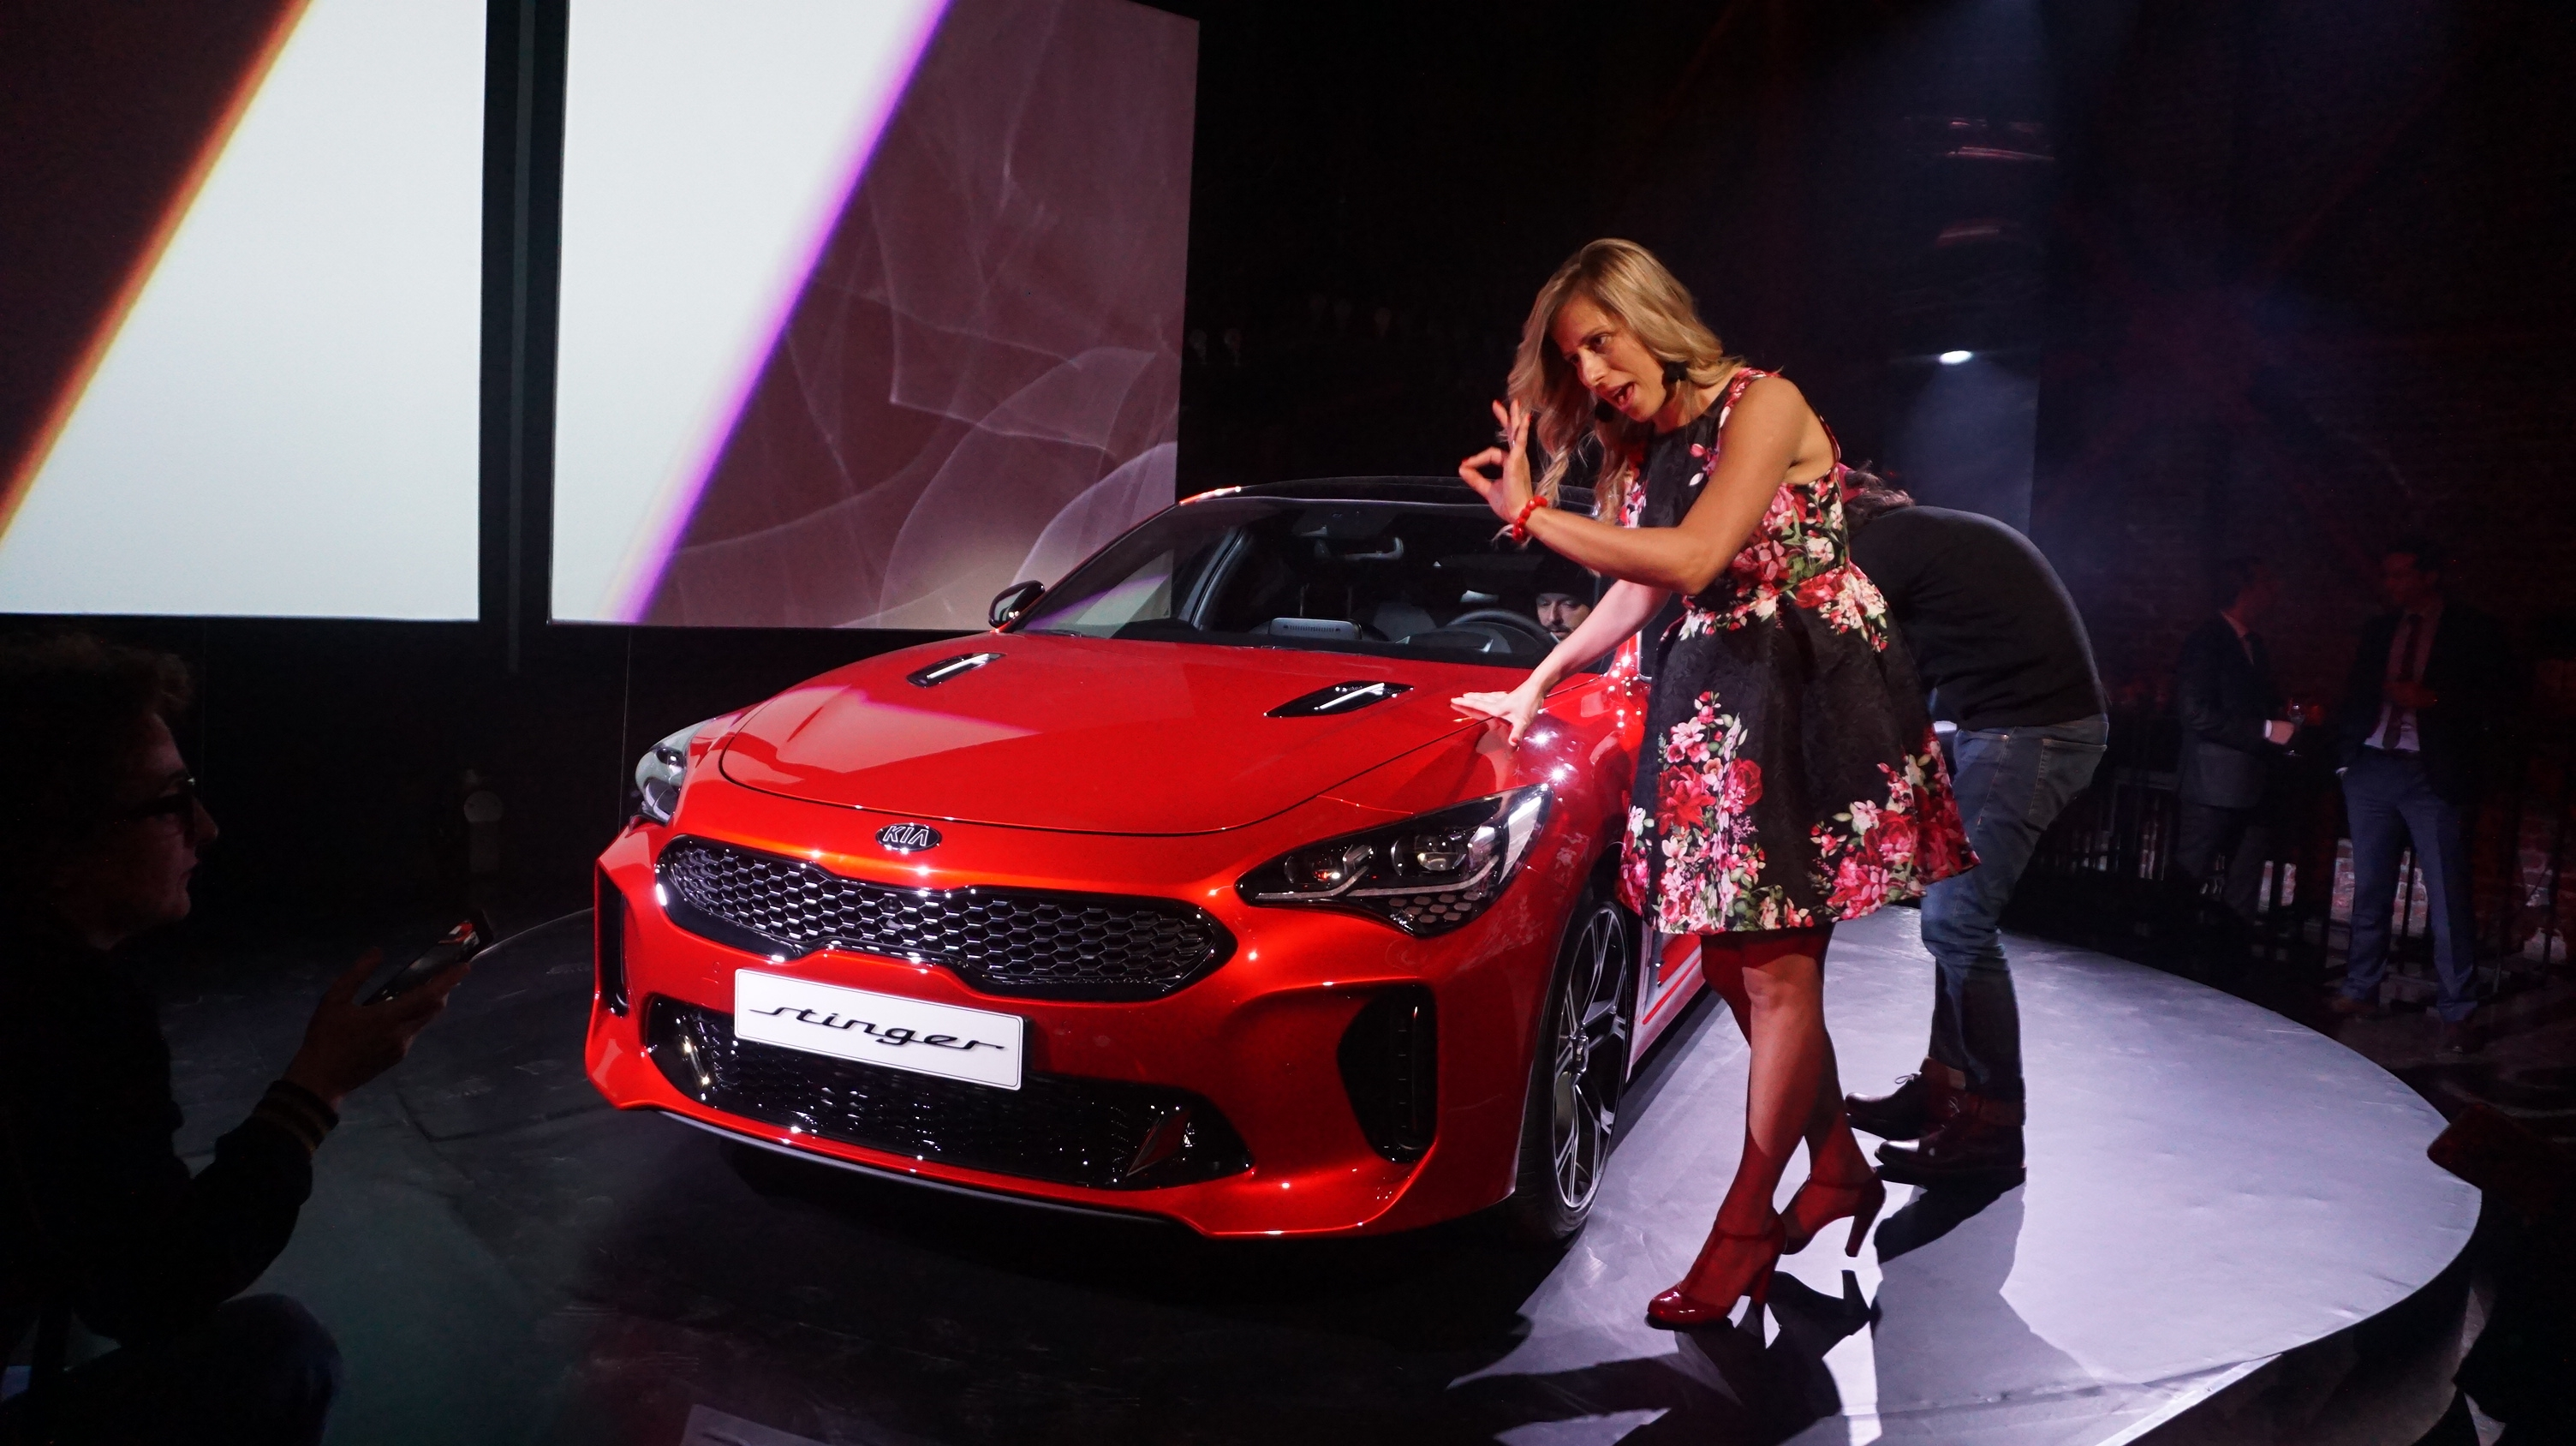 stinger kia, the new luxury car with general price?